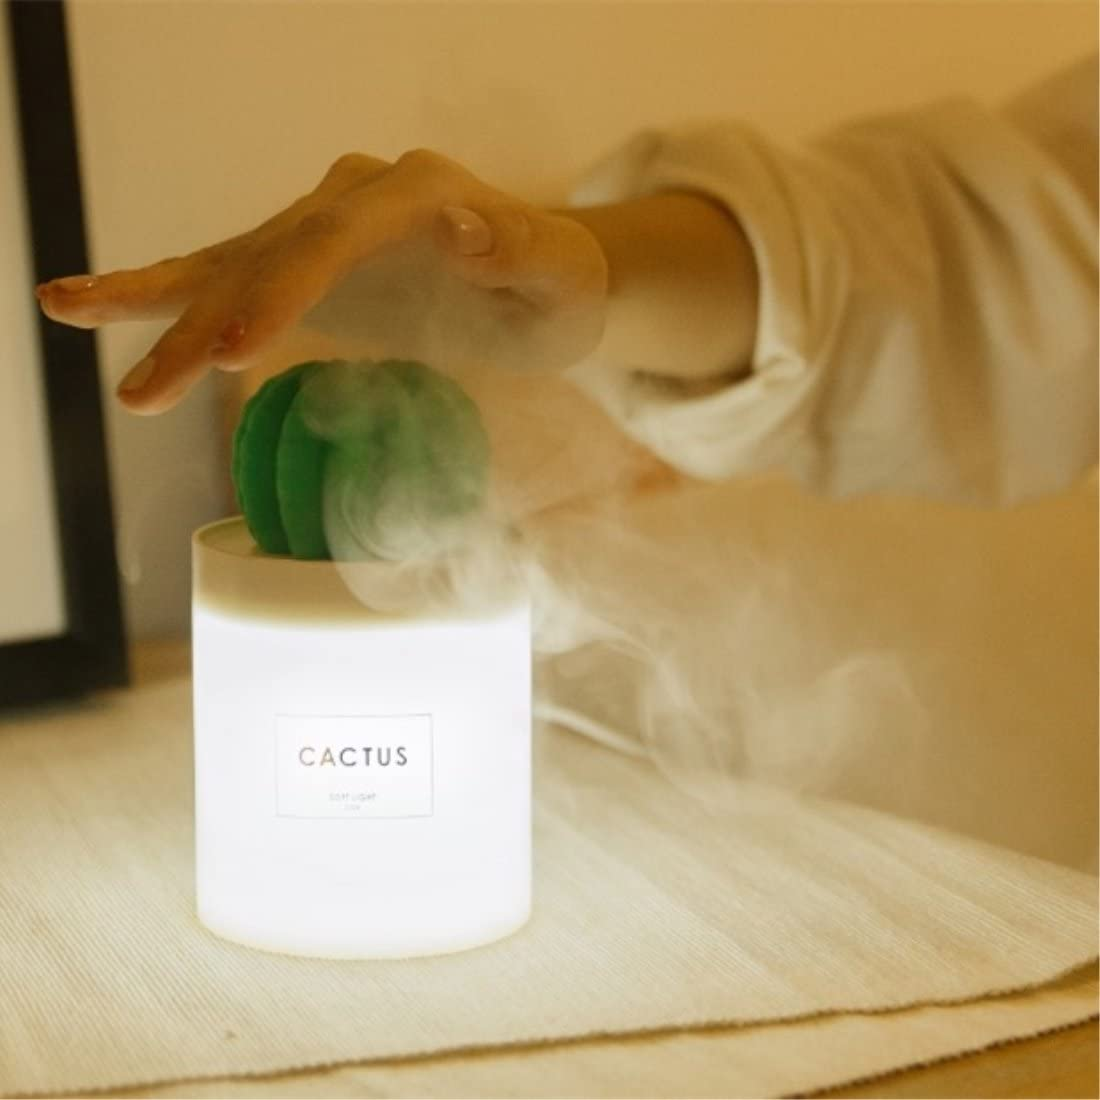 Travel Desktop Mini Cool Mist Humidifier 280ml USB Portable Air Diffuser with Auto Shut-Off Home Coffee Bar Yoga for Bedroom WEIFA Cactus Humidifier with Night Light Baby Room Office Spa